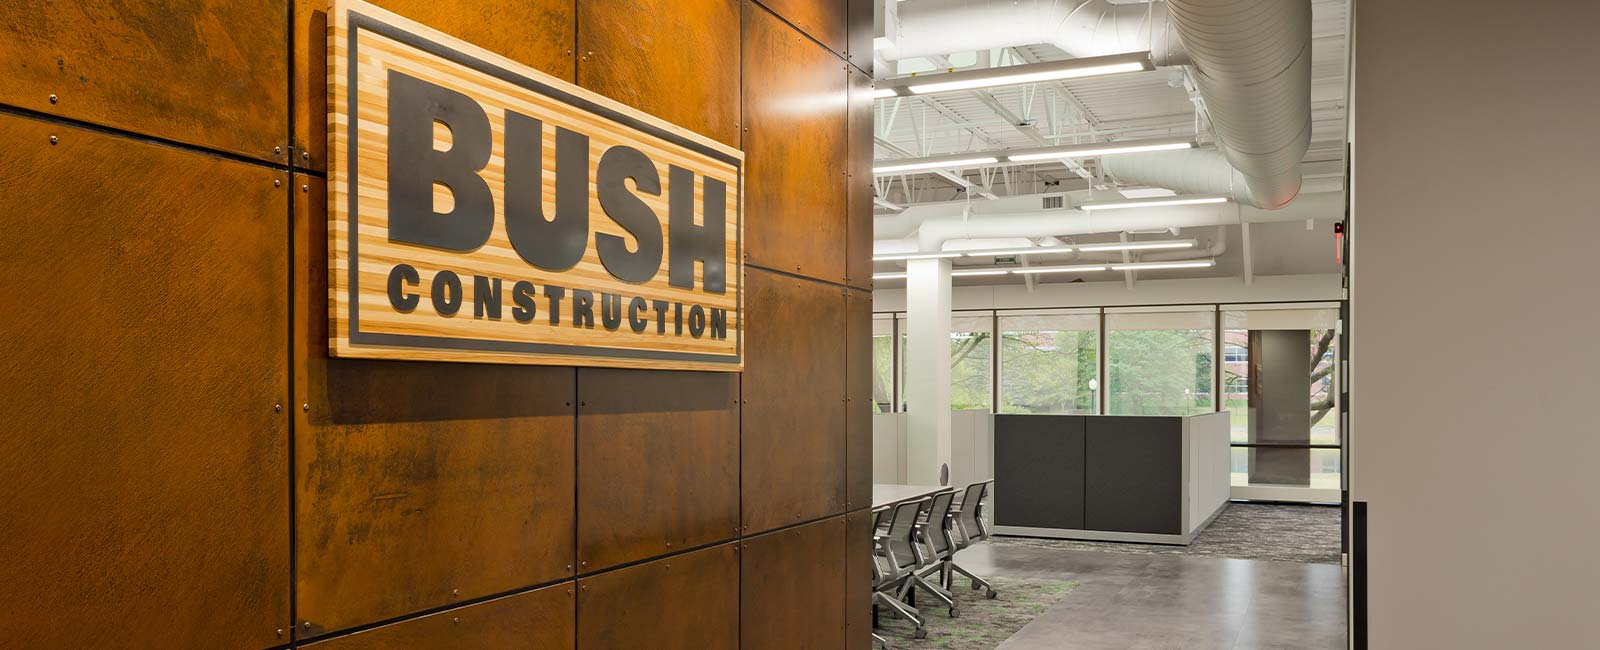 McCarthy-Bush Corporation Headquarters